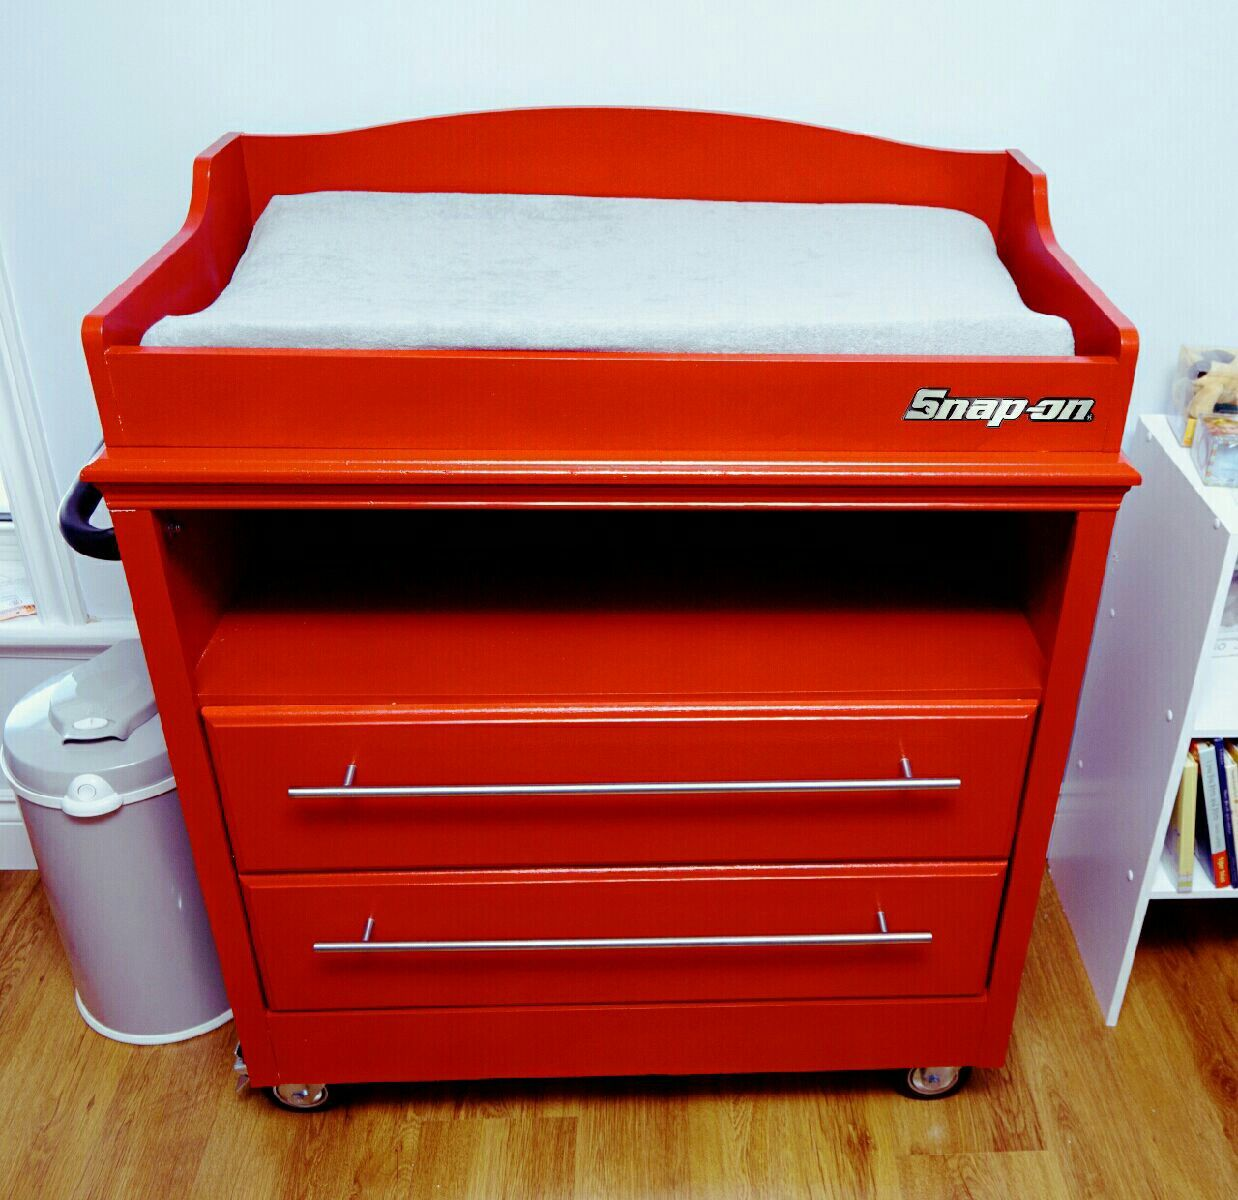 Baby Bedroom In A Box Special: Mechanic Dad Baby Snap On Tool Box Change Table